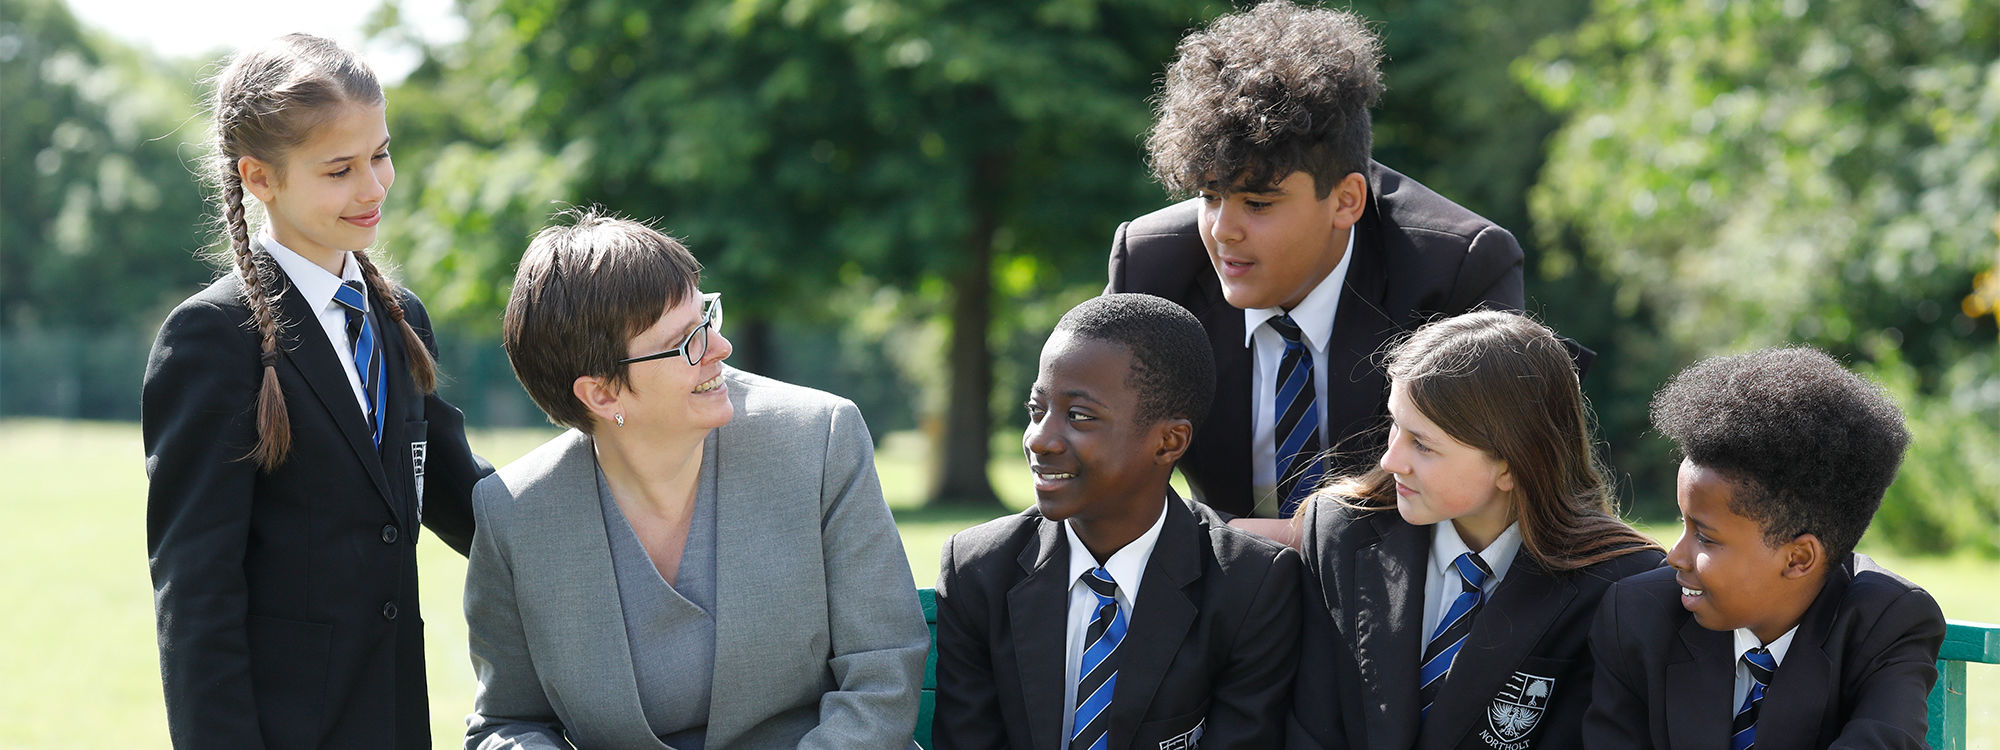 Northolt high school header image 8